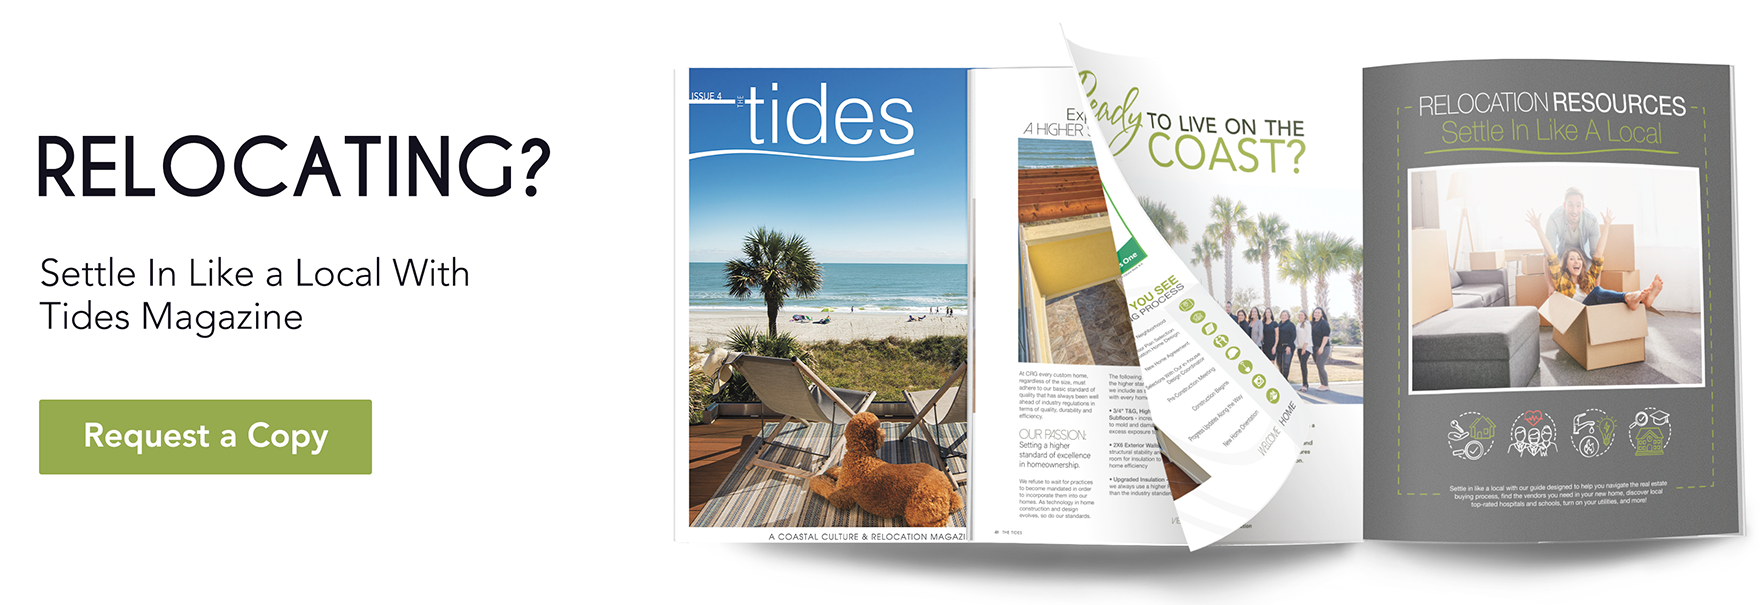 Request a copy of the Tides Magazine